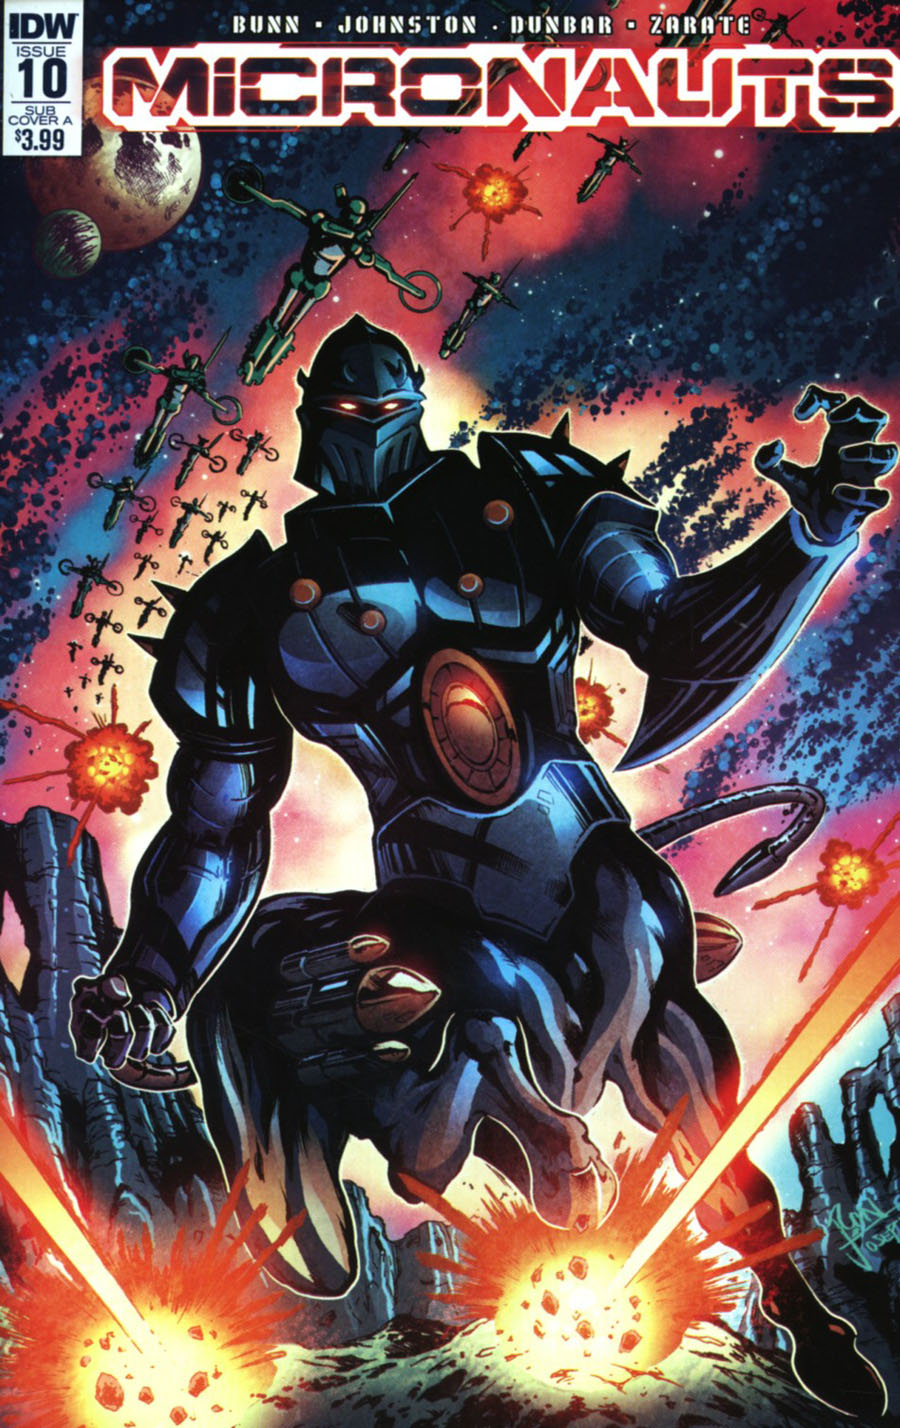 Micronauts Vol 5 #10 Cover B Variant Ron Joseph Subscription Cover